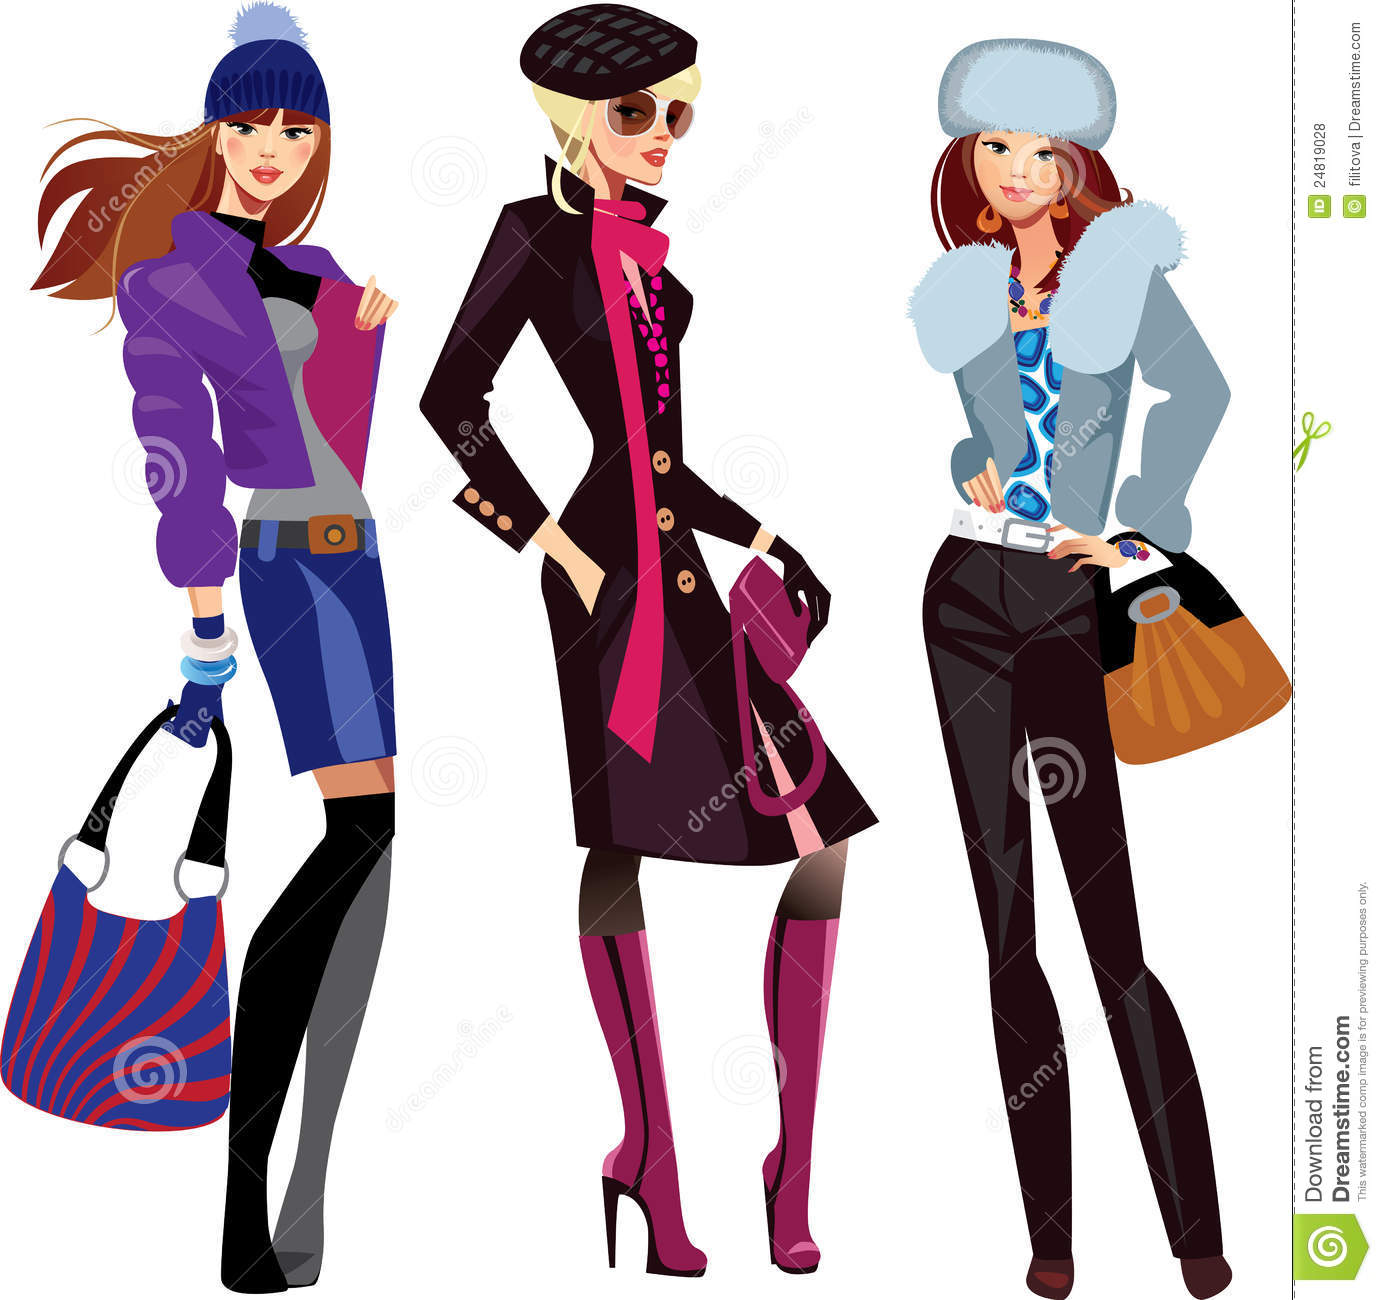 Women fashion clipart images gallery for Free Download.